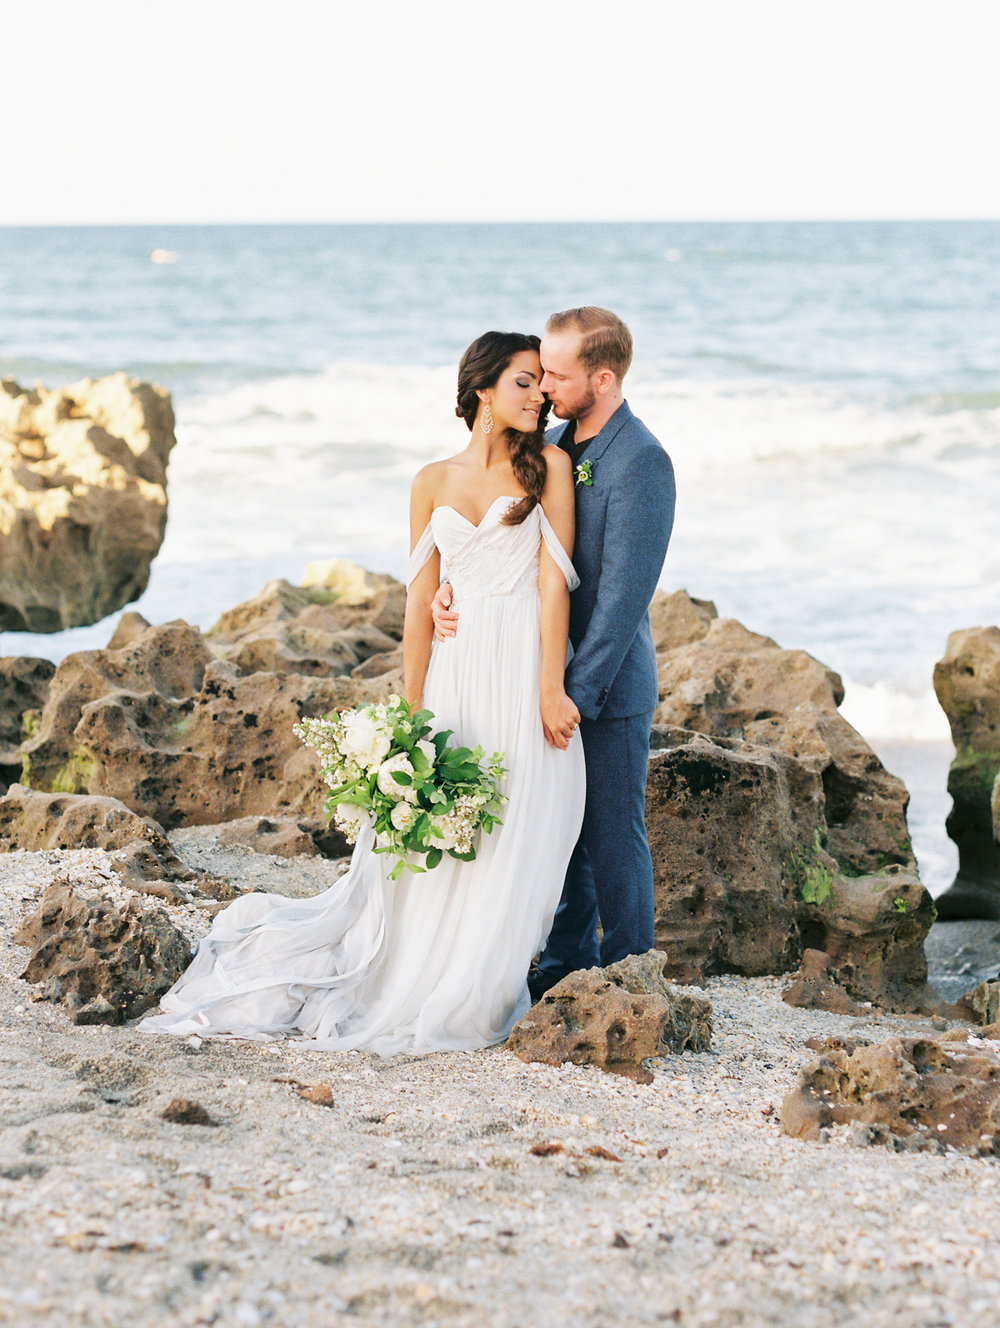 coral cove, jupiter beach FL, palm beach wedding photos, bride and groom on rocks